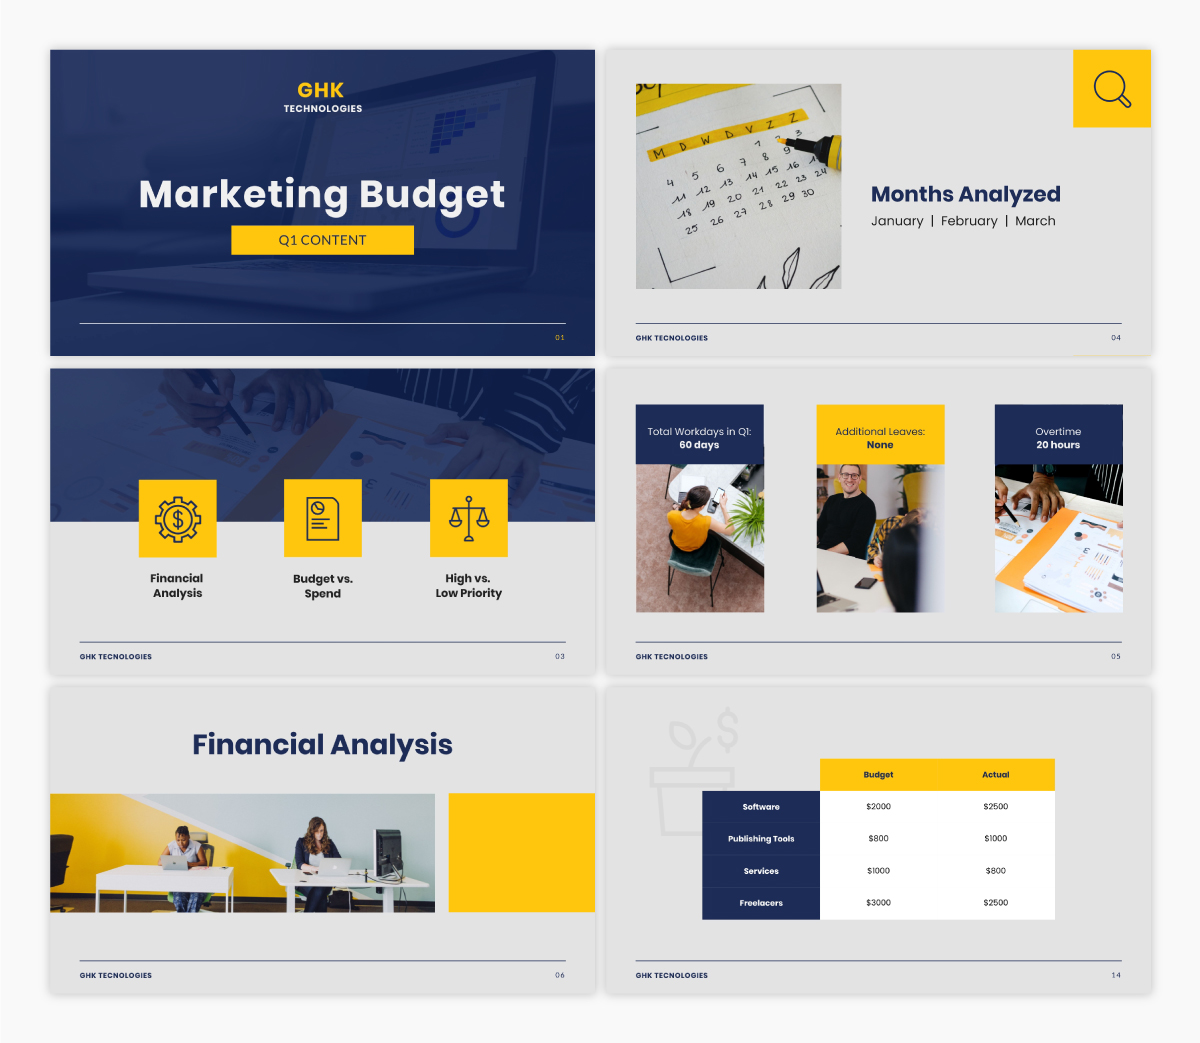 A marketing budget presentation template using the font Poppins.